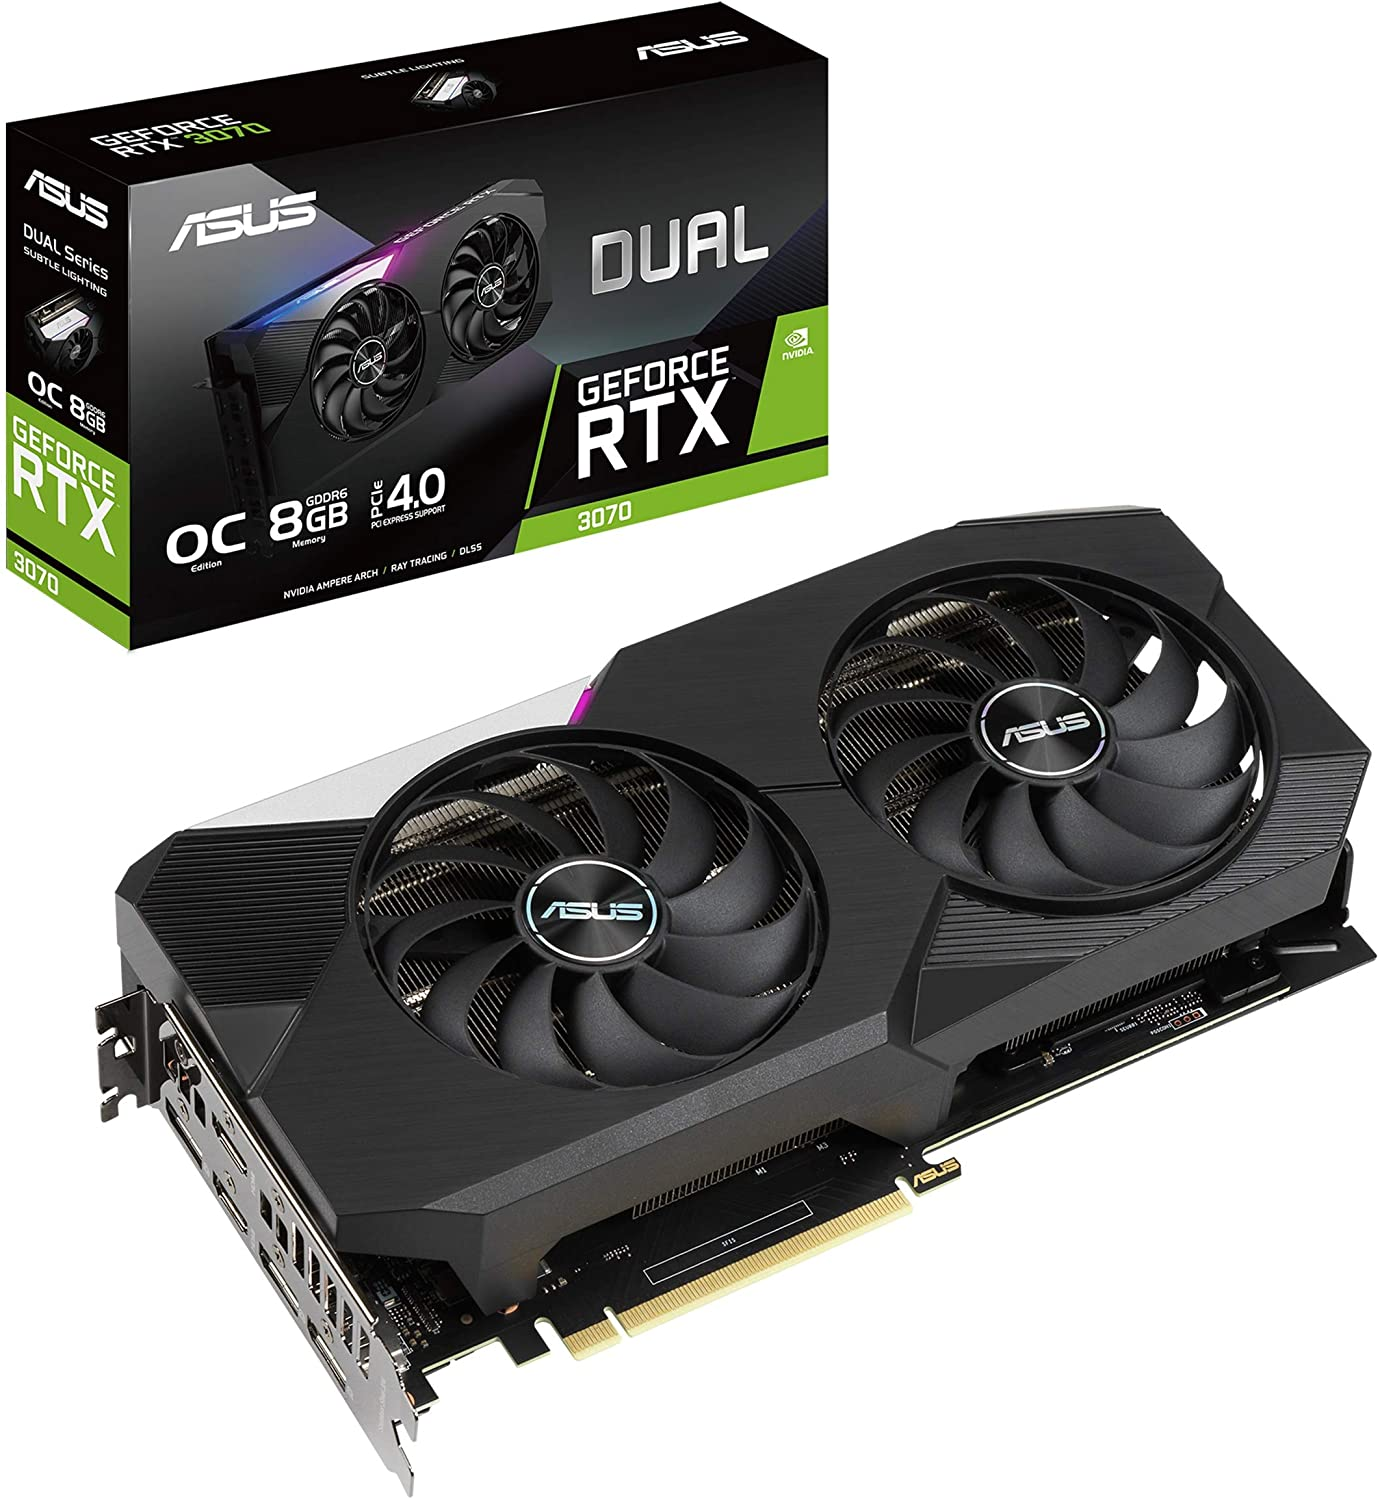 Asus RTX 3070 Dual OC Edition